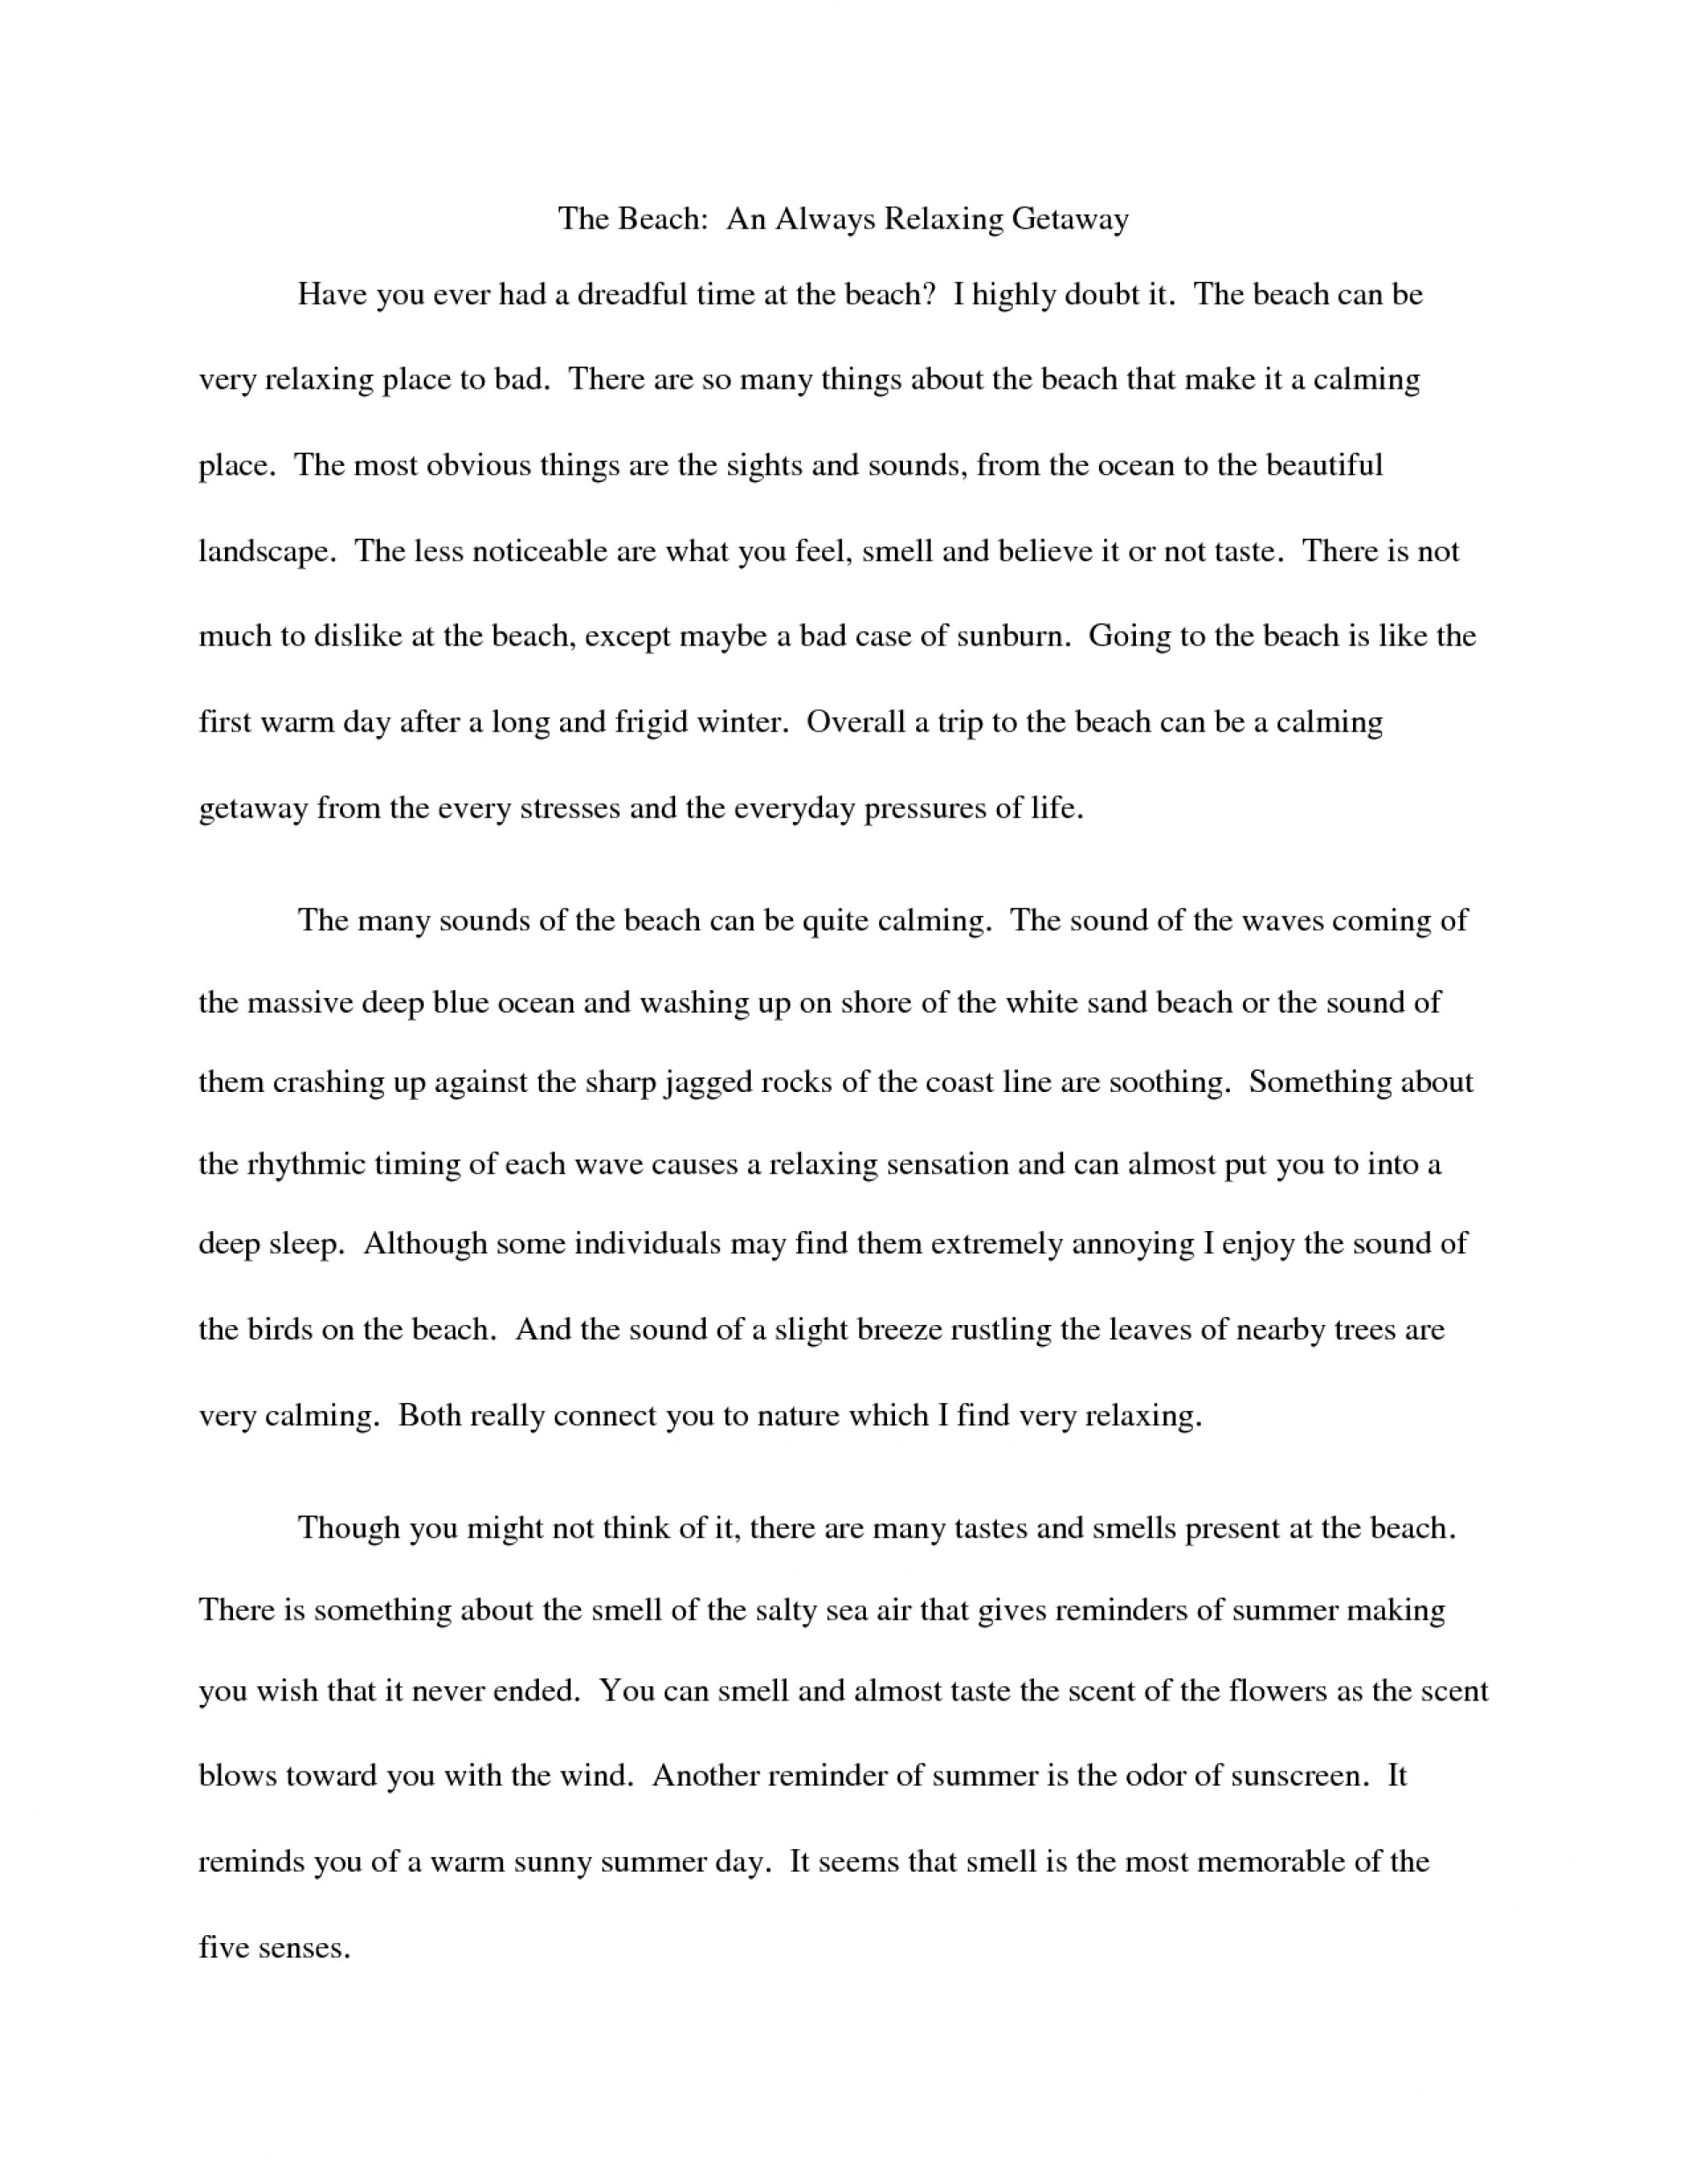 004 Essaye Descriptive Beach Essays College That Stand Out Odvqltnc Short On The Sunset Paper Barefoot About Walk Vacation Narrative At Night Free Walking Amazing Examples 5 Paragraphs Essay Sample A Person Pdf Example 1920